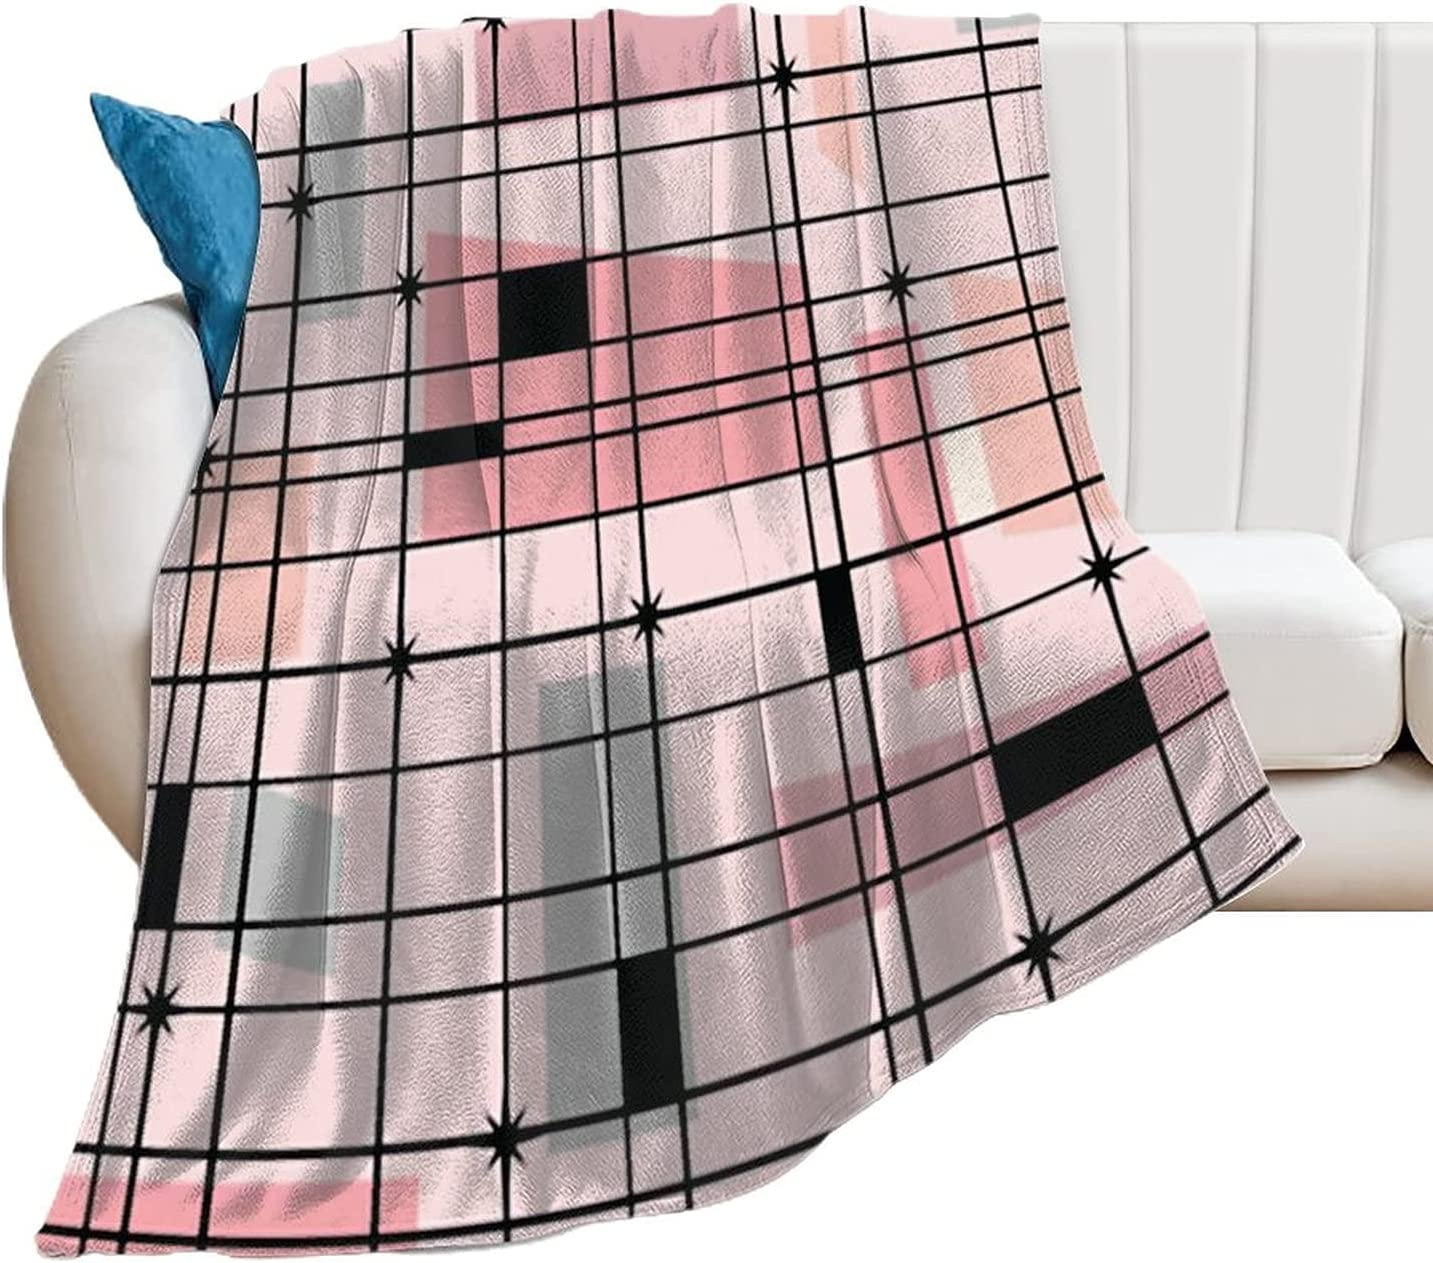 DKISEE Soft Blanket for Memphis Mall Indianapolis Mall Couch 50